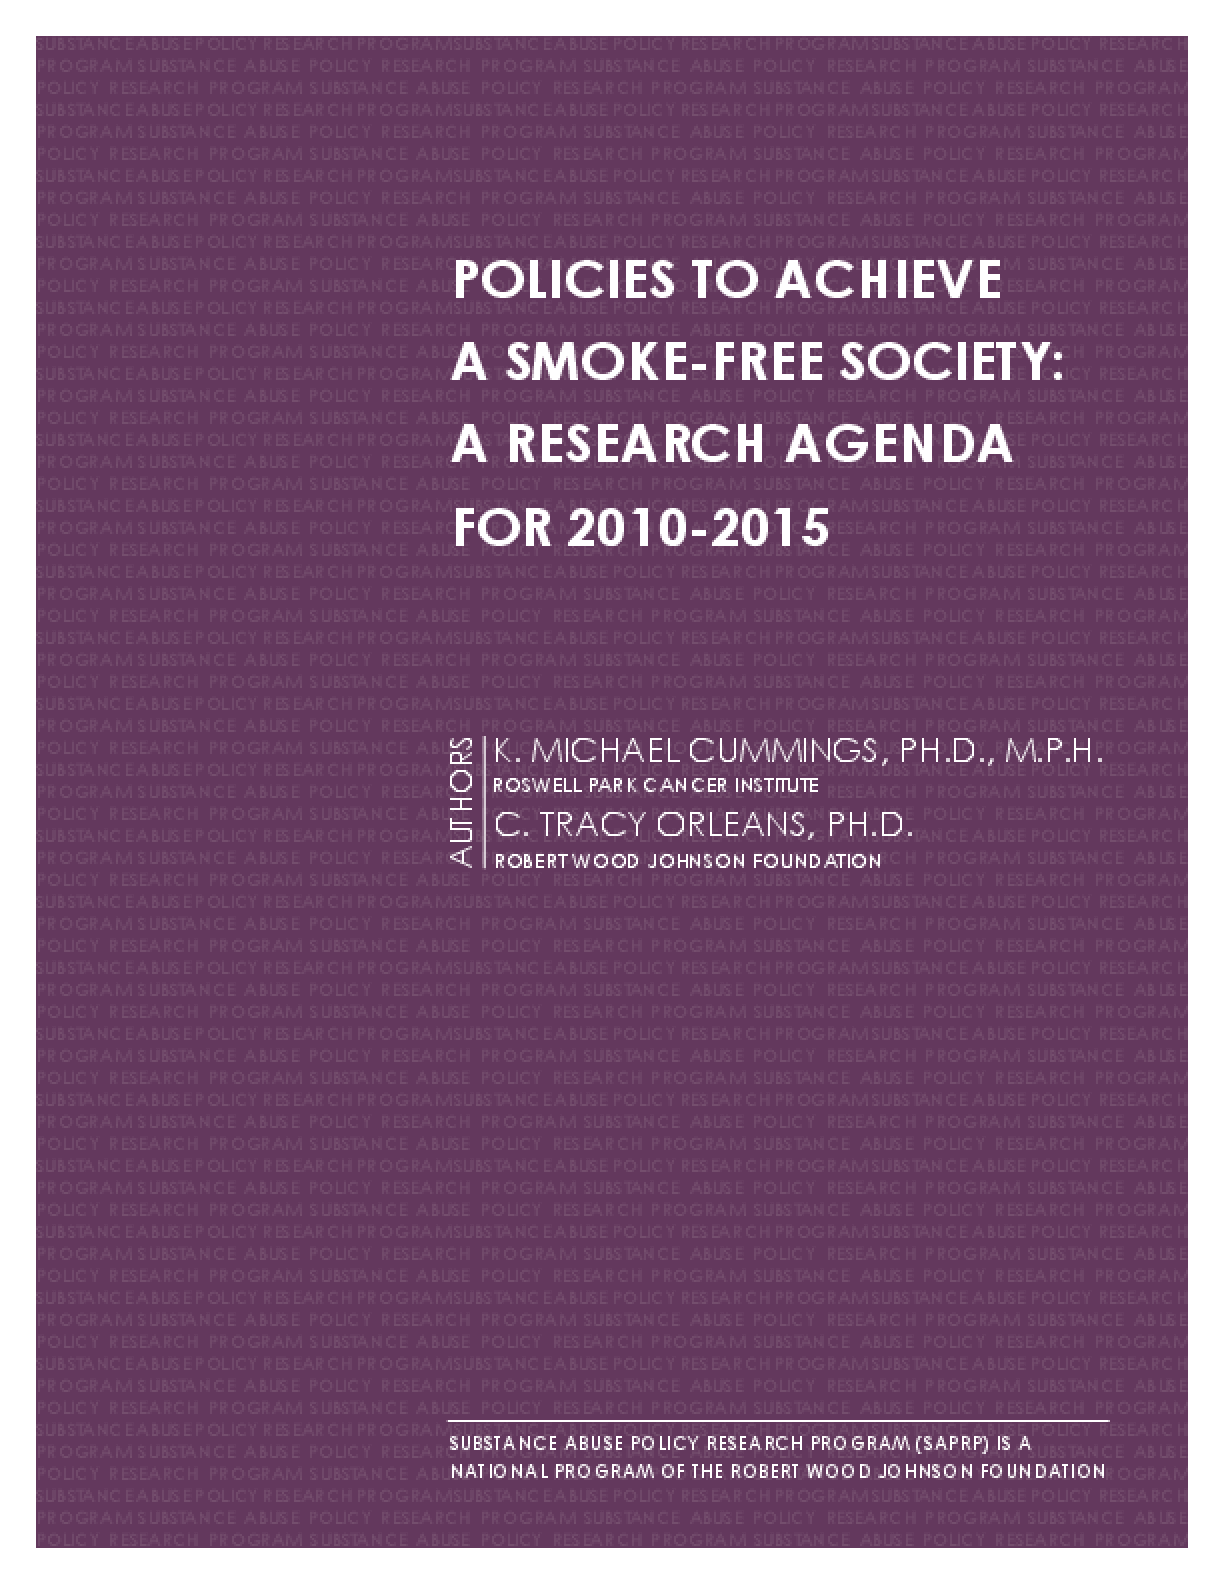 Policies to Achieve a Smoke-Free Society: A Research Agenda for 2010-2015